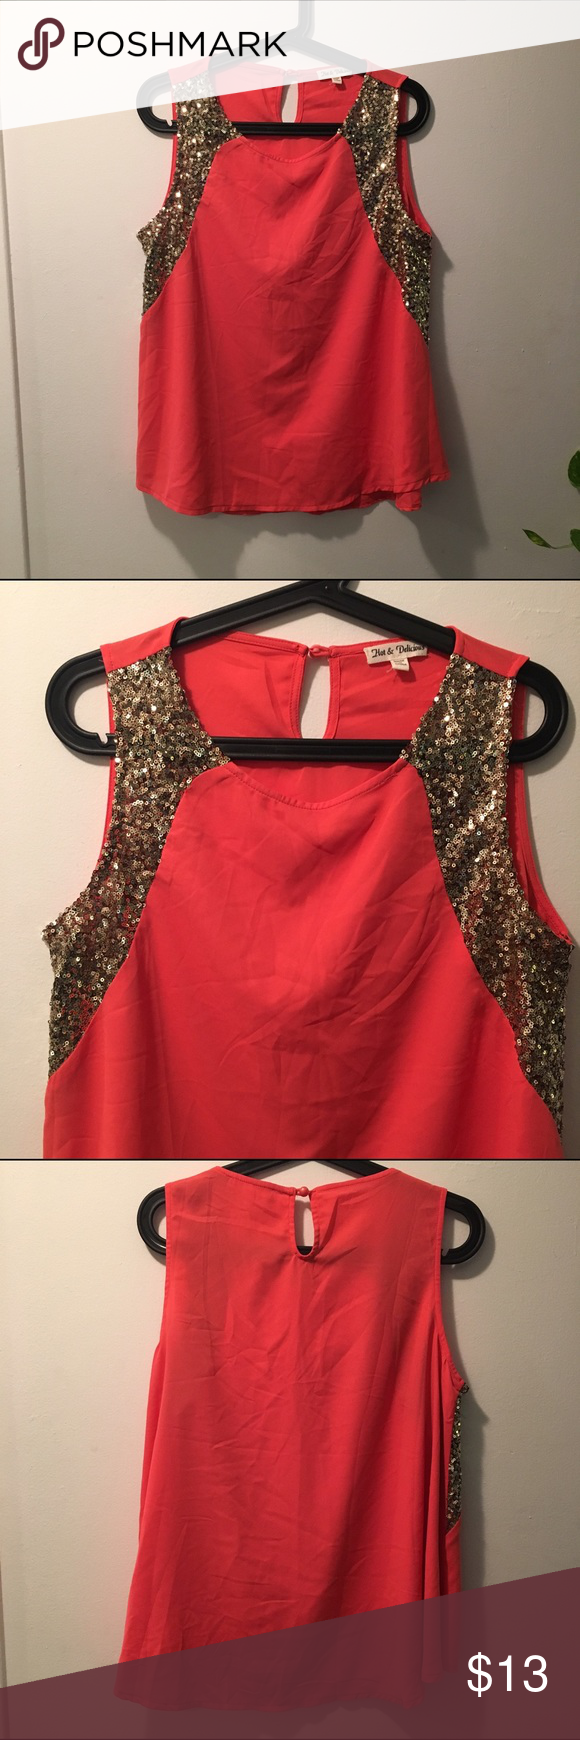 Coral top with gold sequins Coral top with sequins. Never worn. Tops Blouses